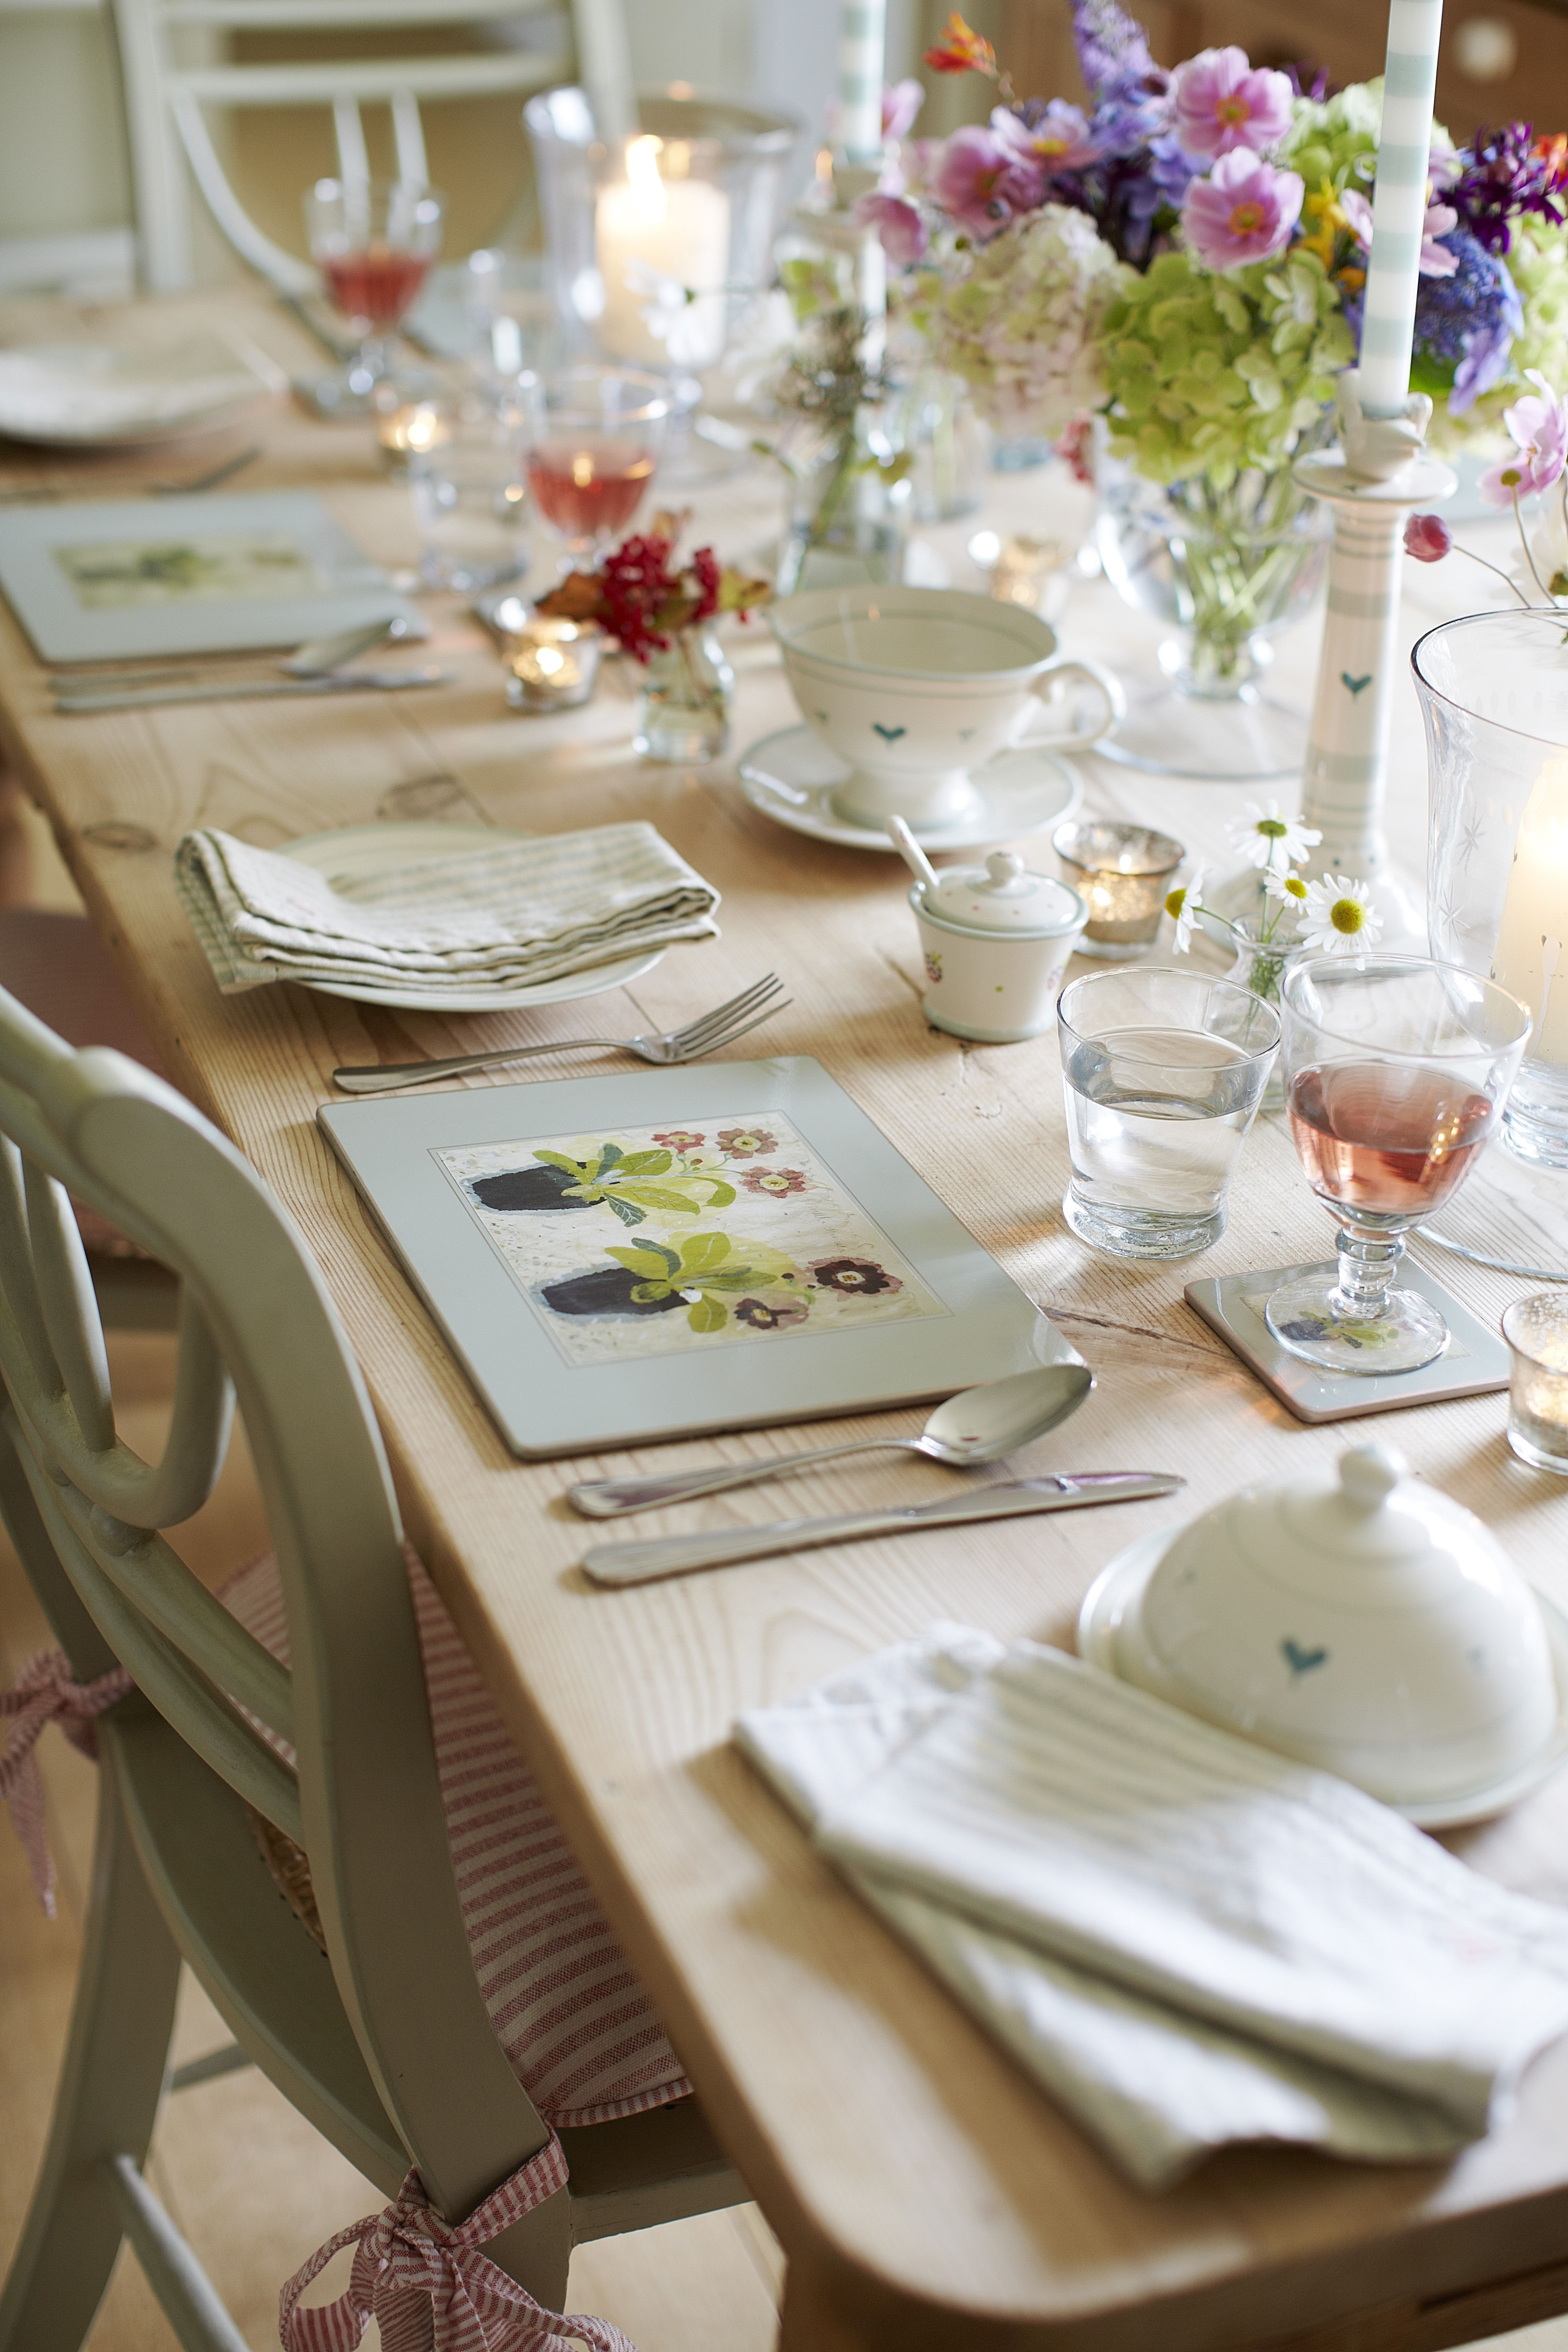 Laying a beautiful dinner table, flowers, glass, artistic